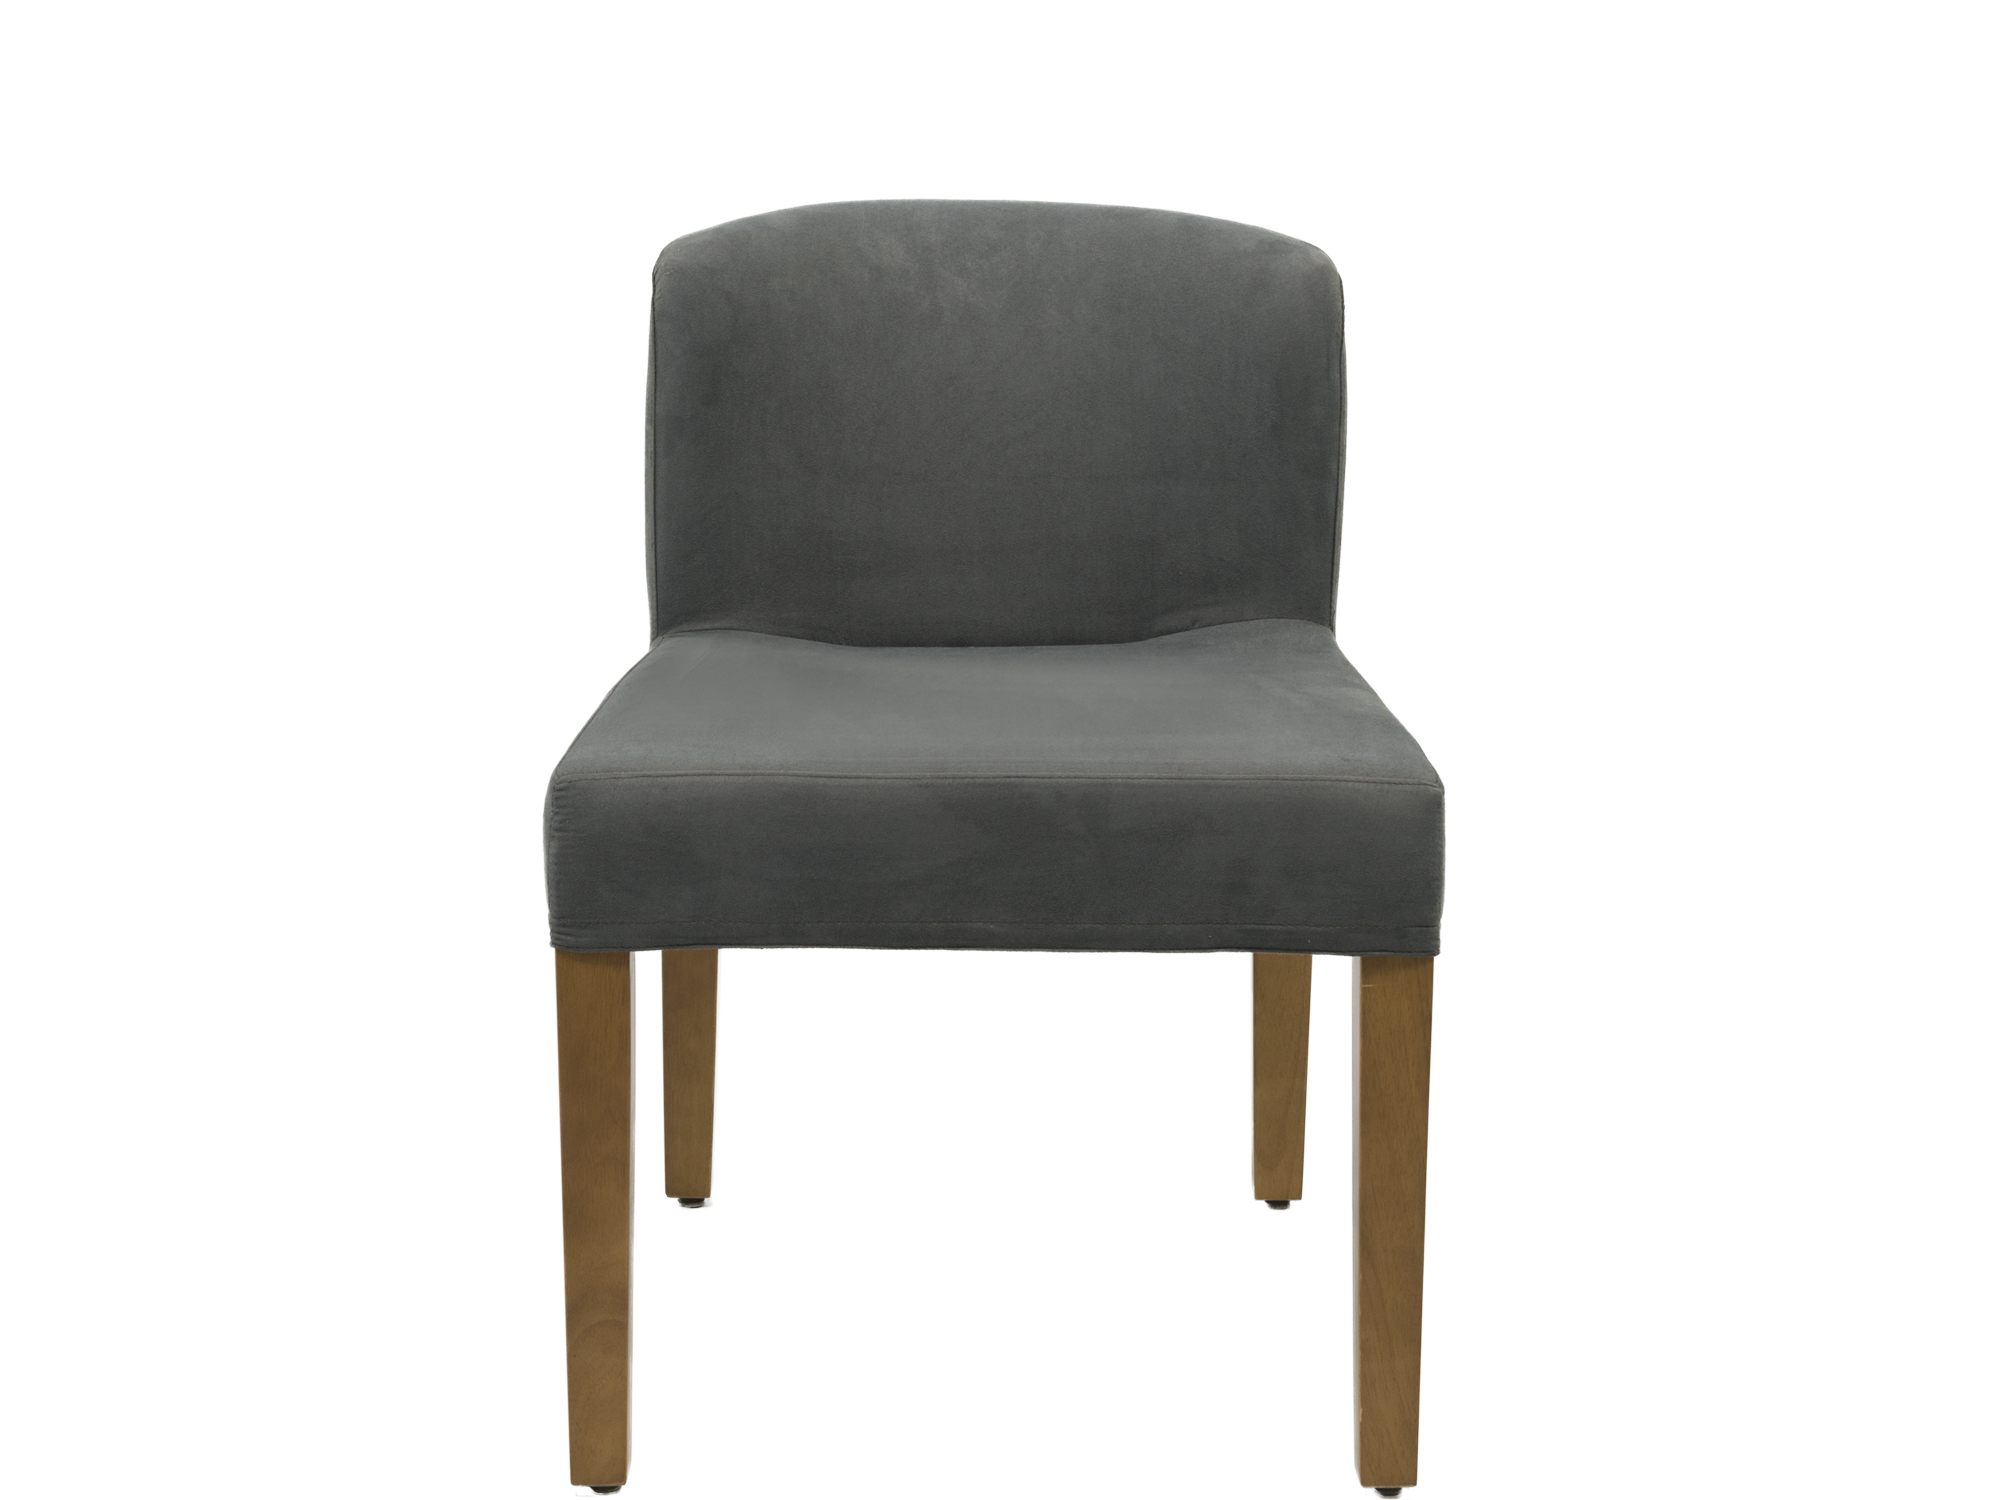 Apex dining chair meubles newell furniture for Meubles newell montreal